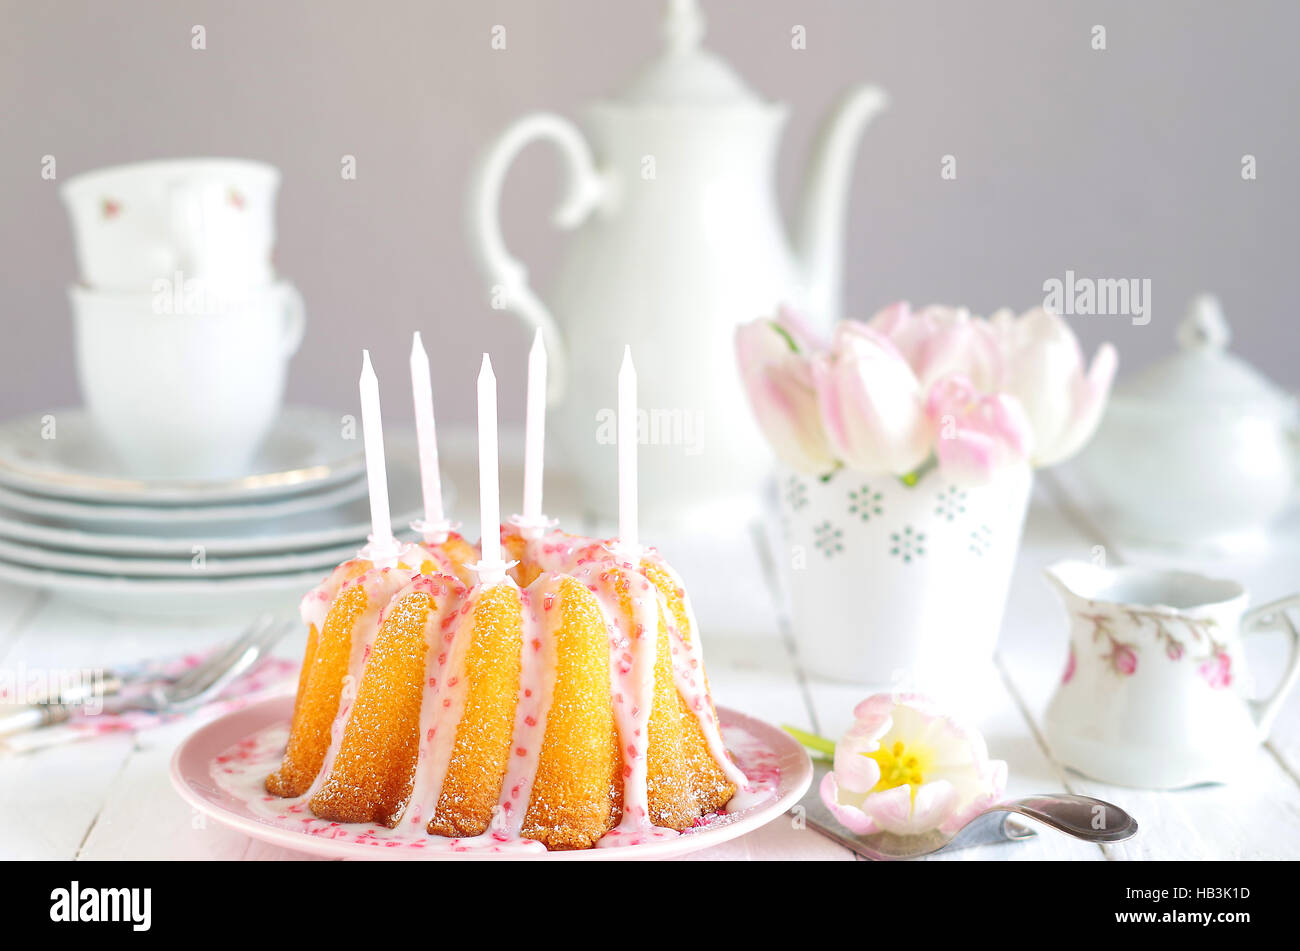 coffee table with birthday cake - Stock Image